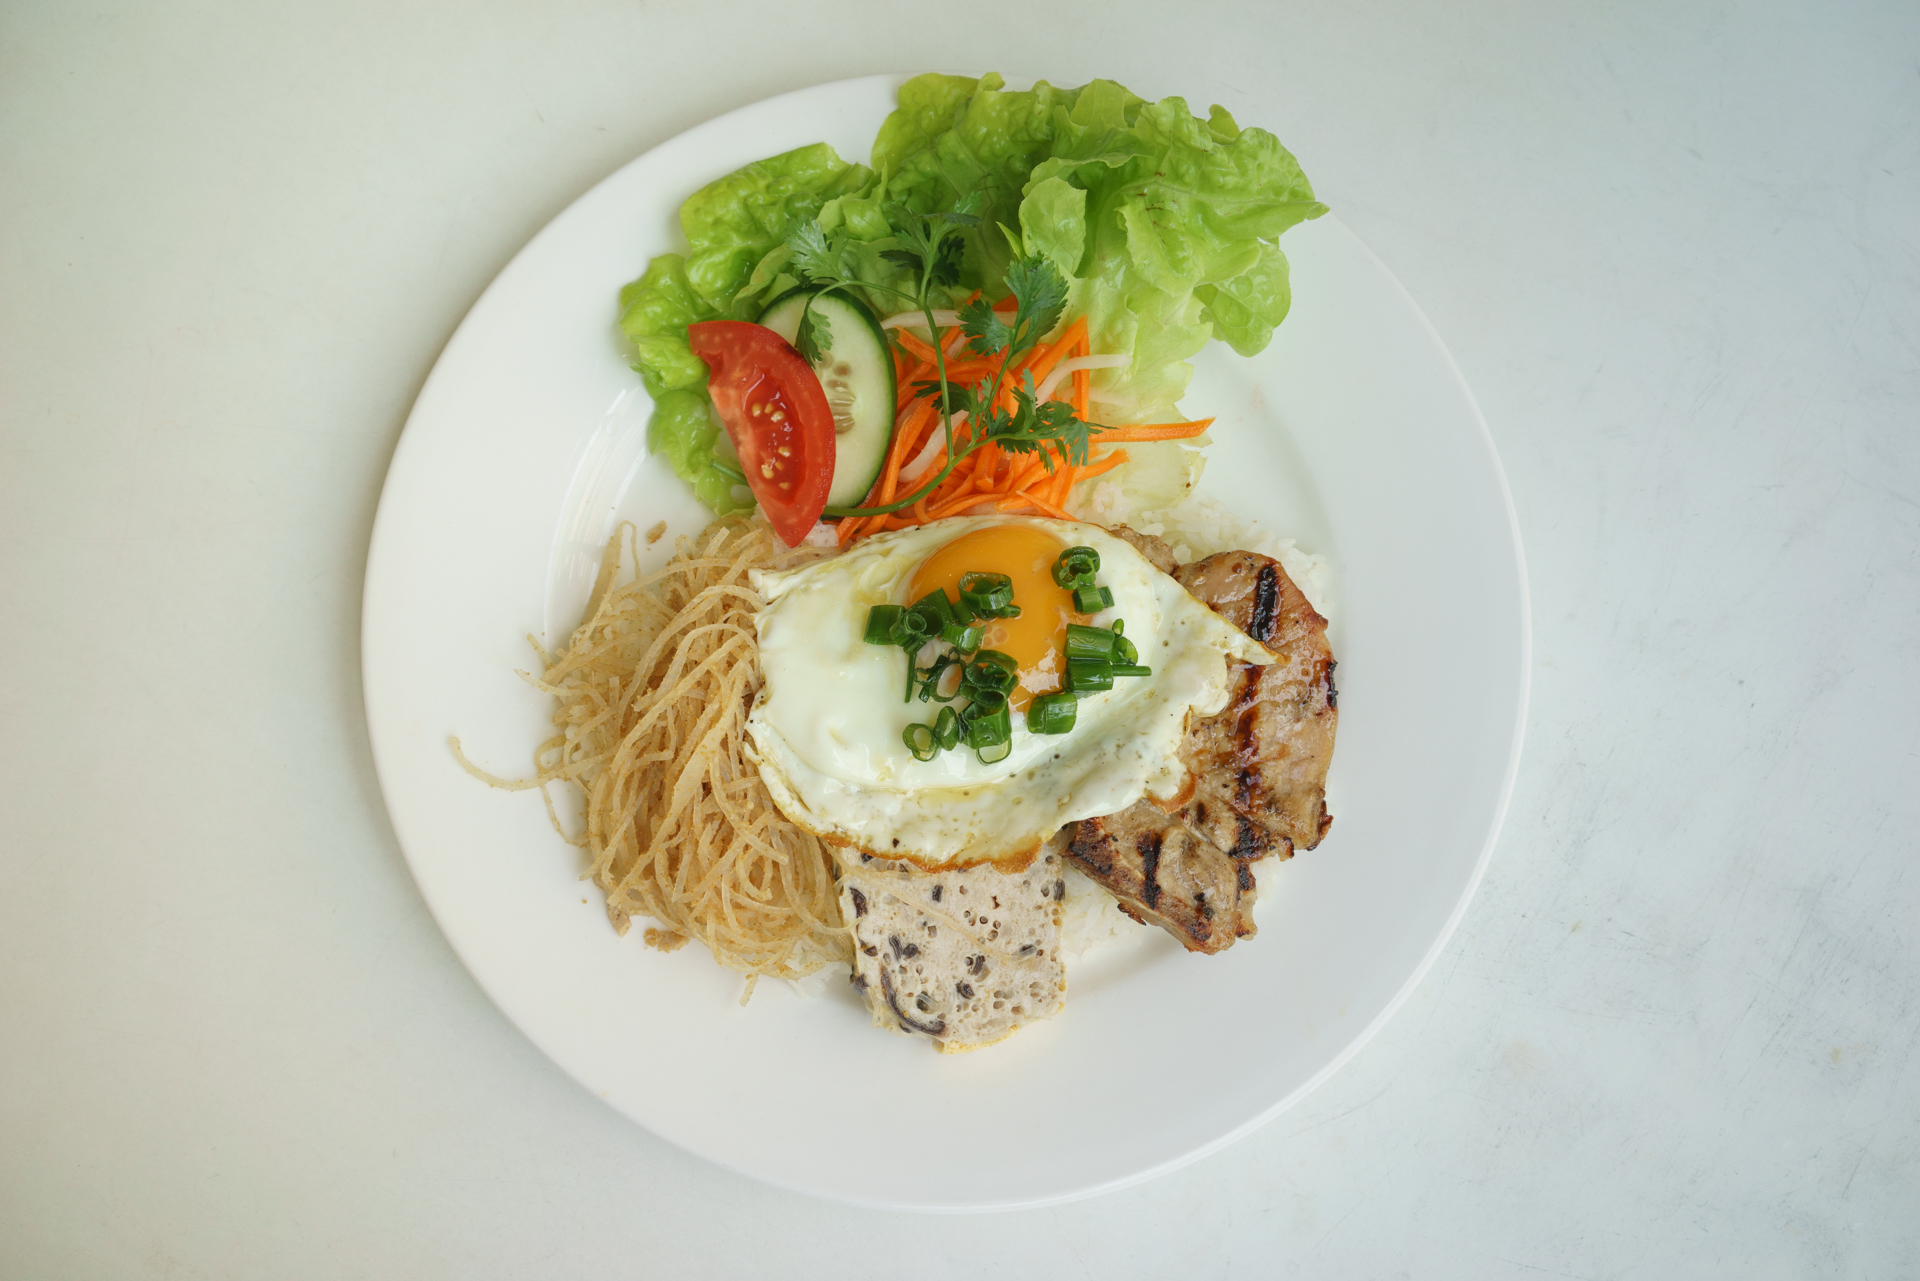 Combination broken rice with a fried egg ~ com tam bi suon cha trung